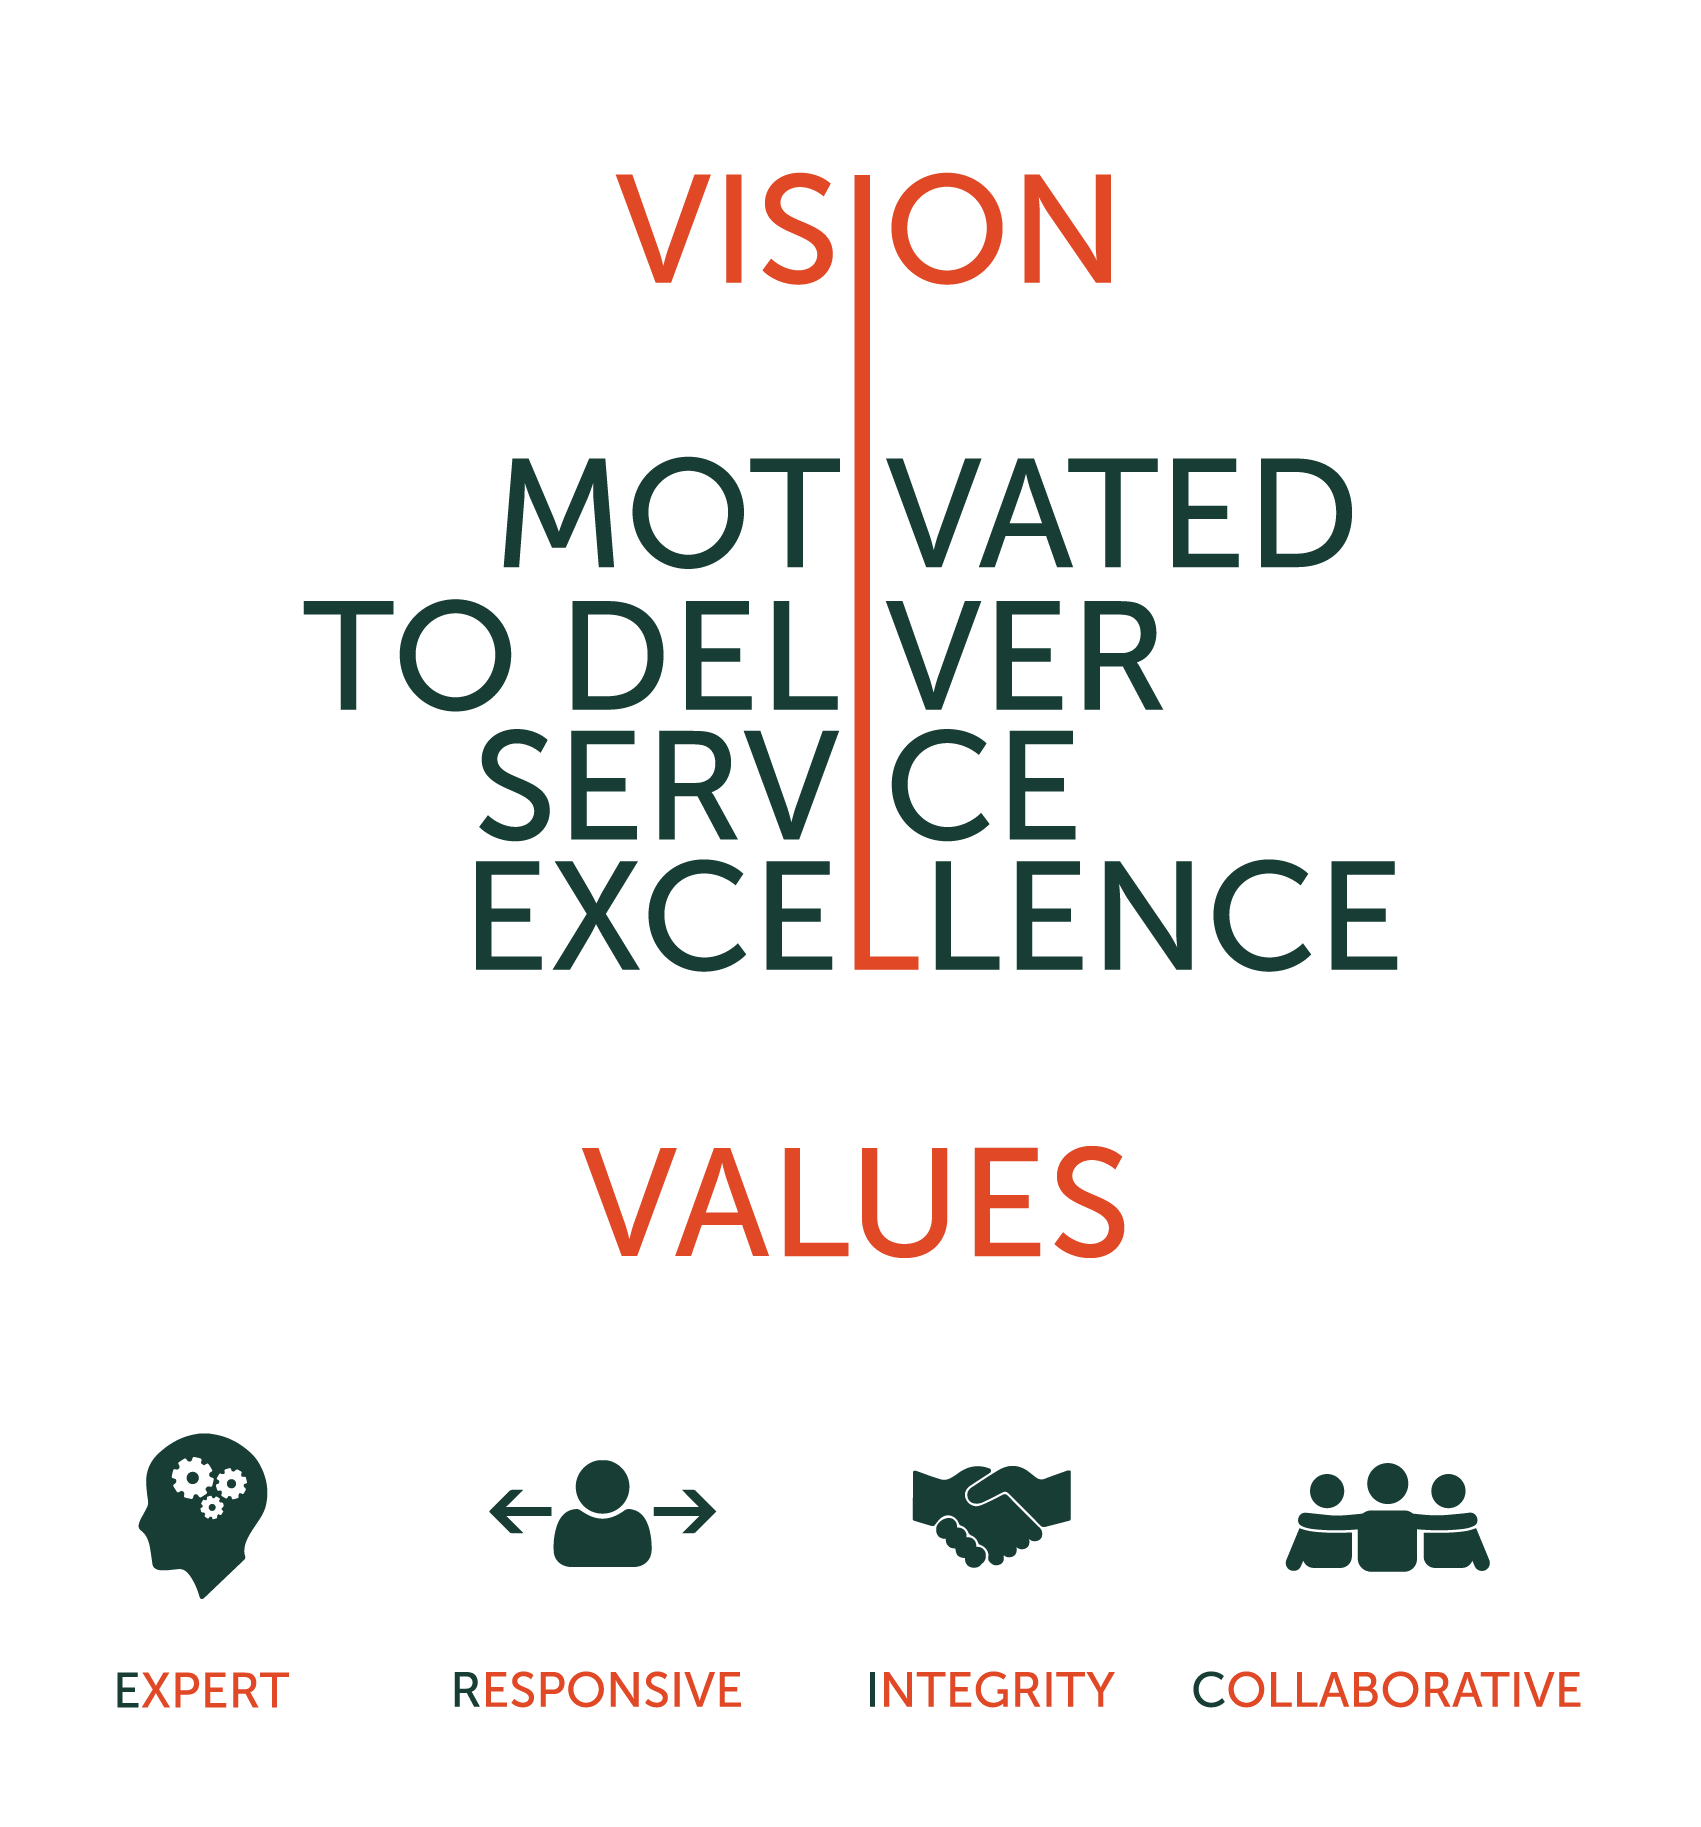 Vision and Values - Motivated to deliver service excellence